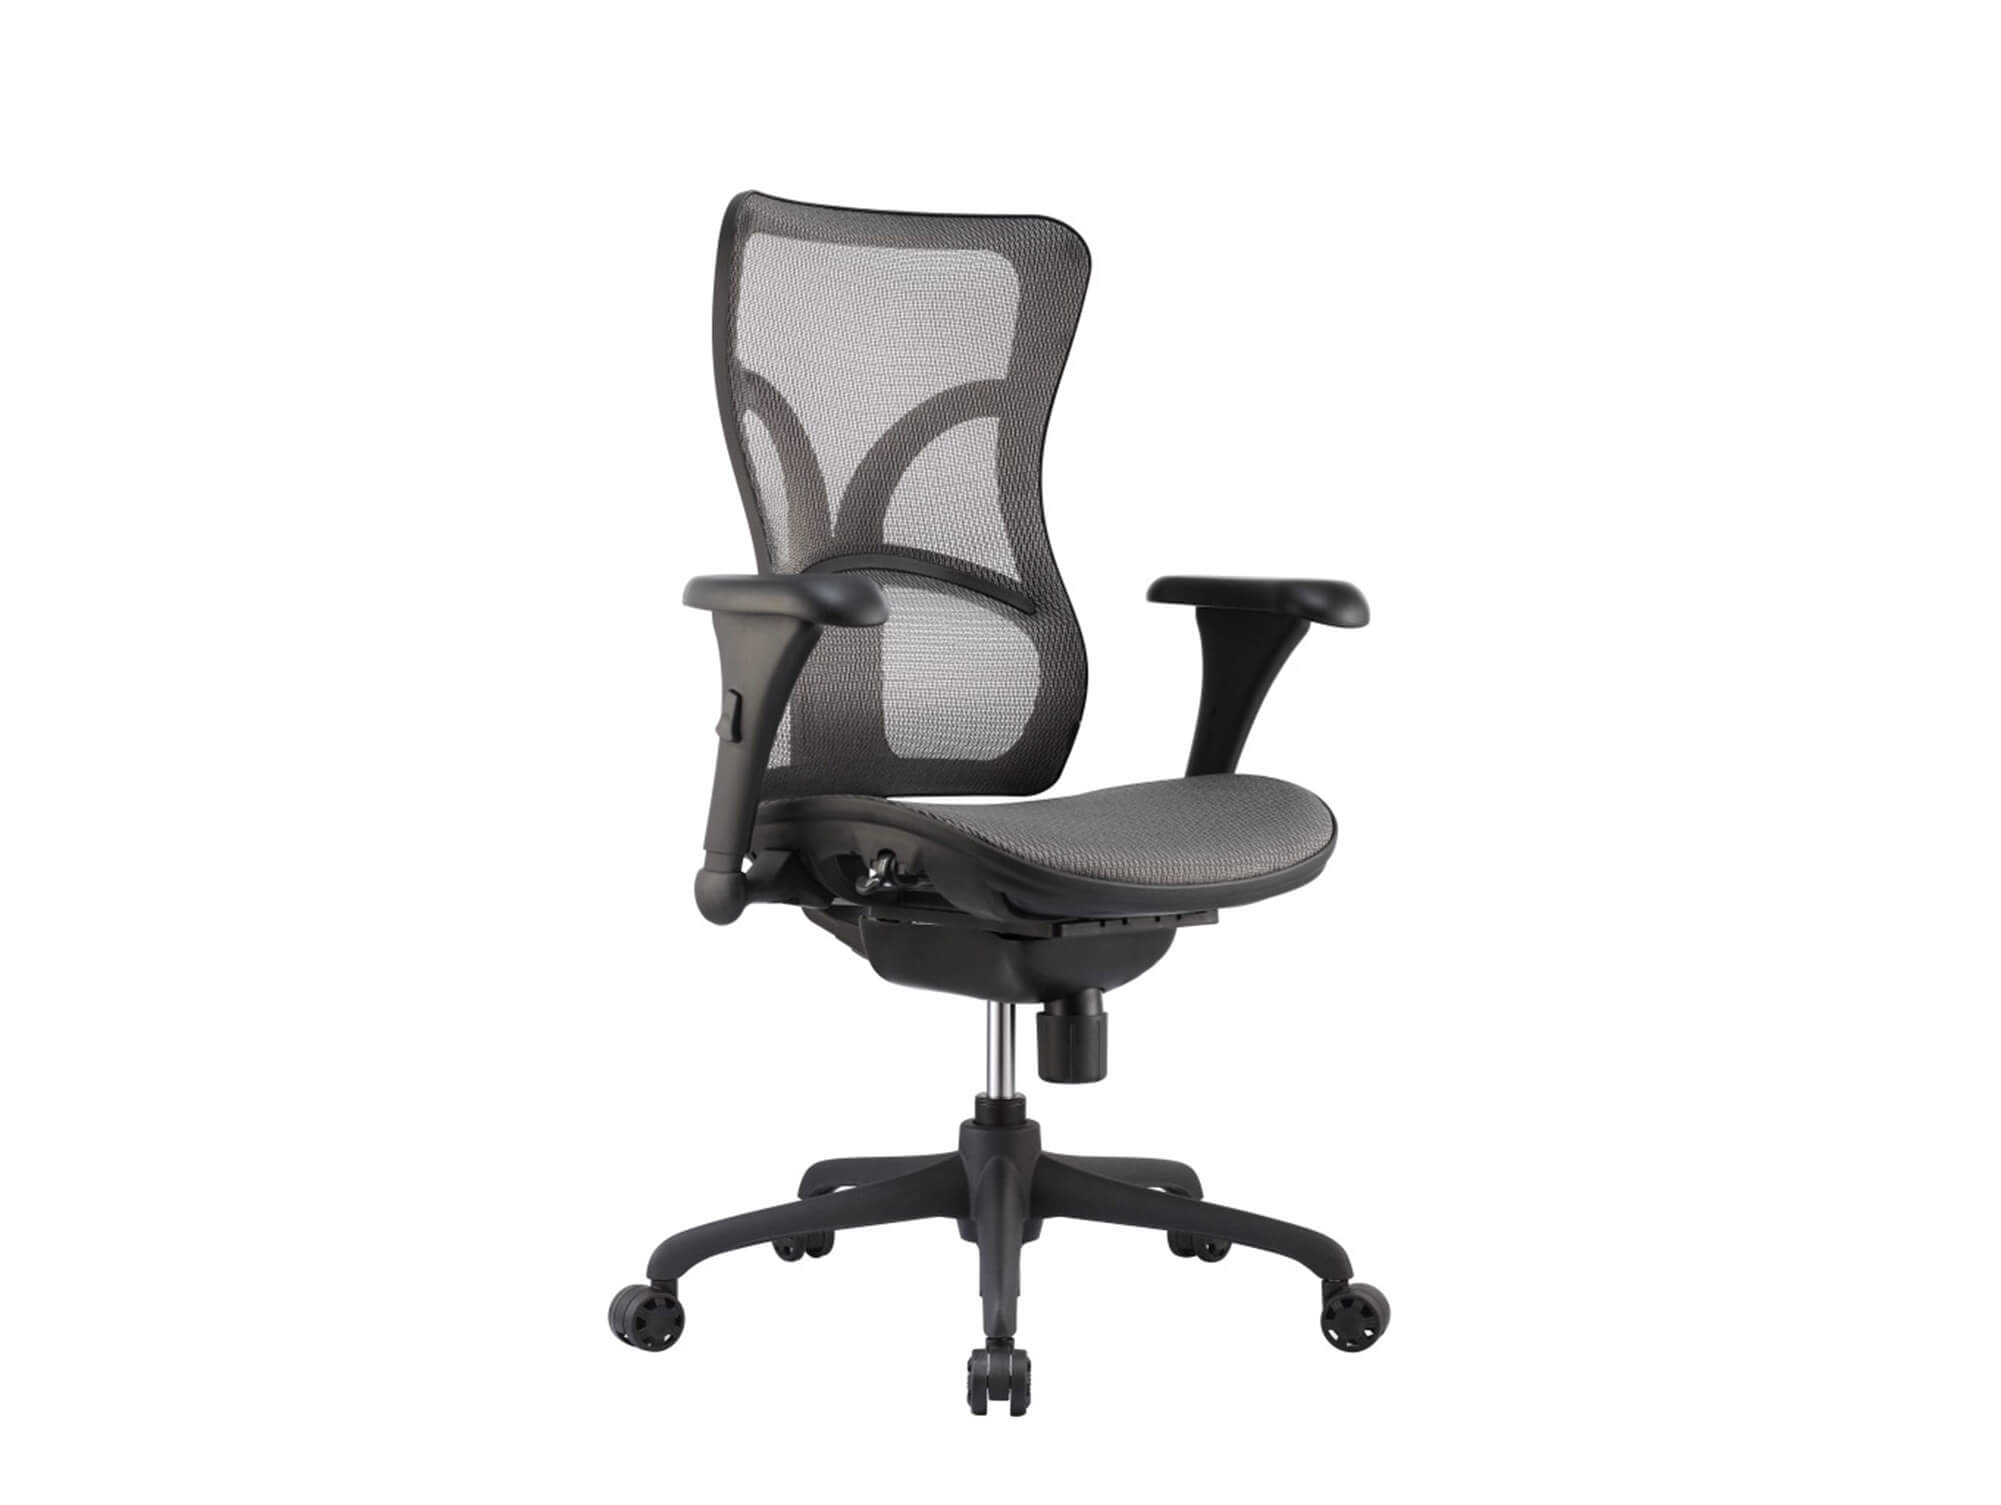 chairs-for-office-adjustable-office-chair.jpg